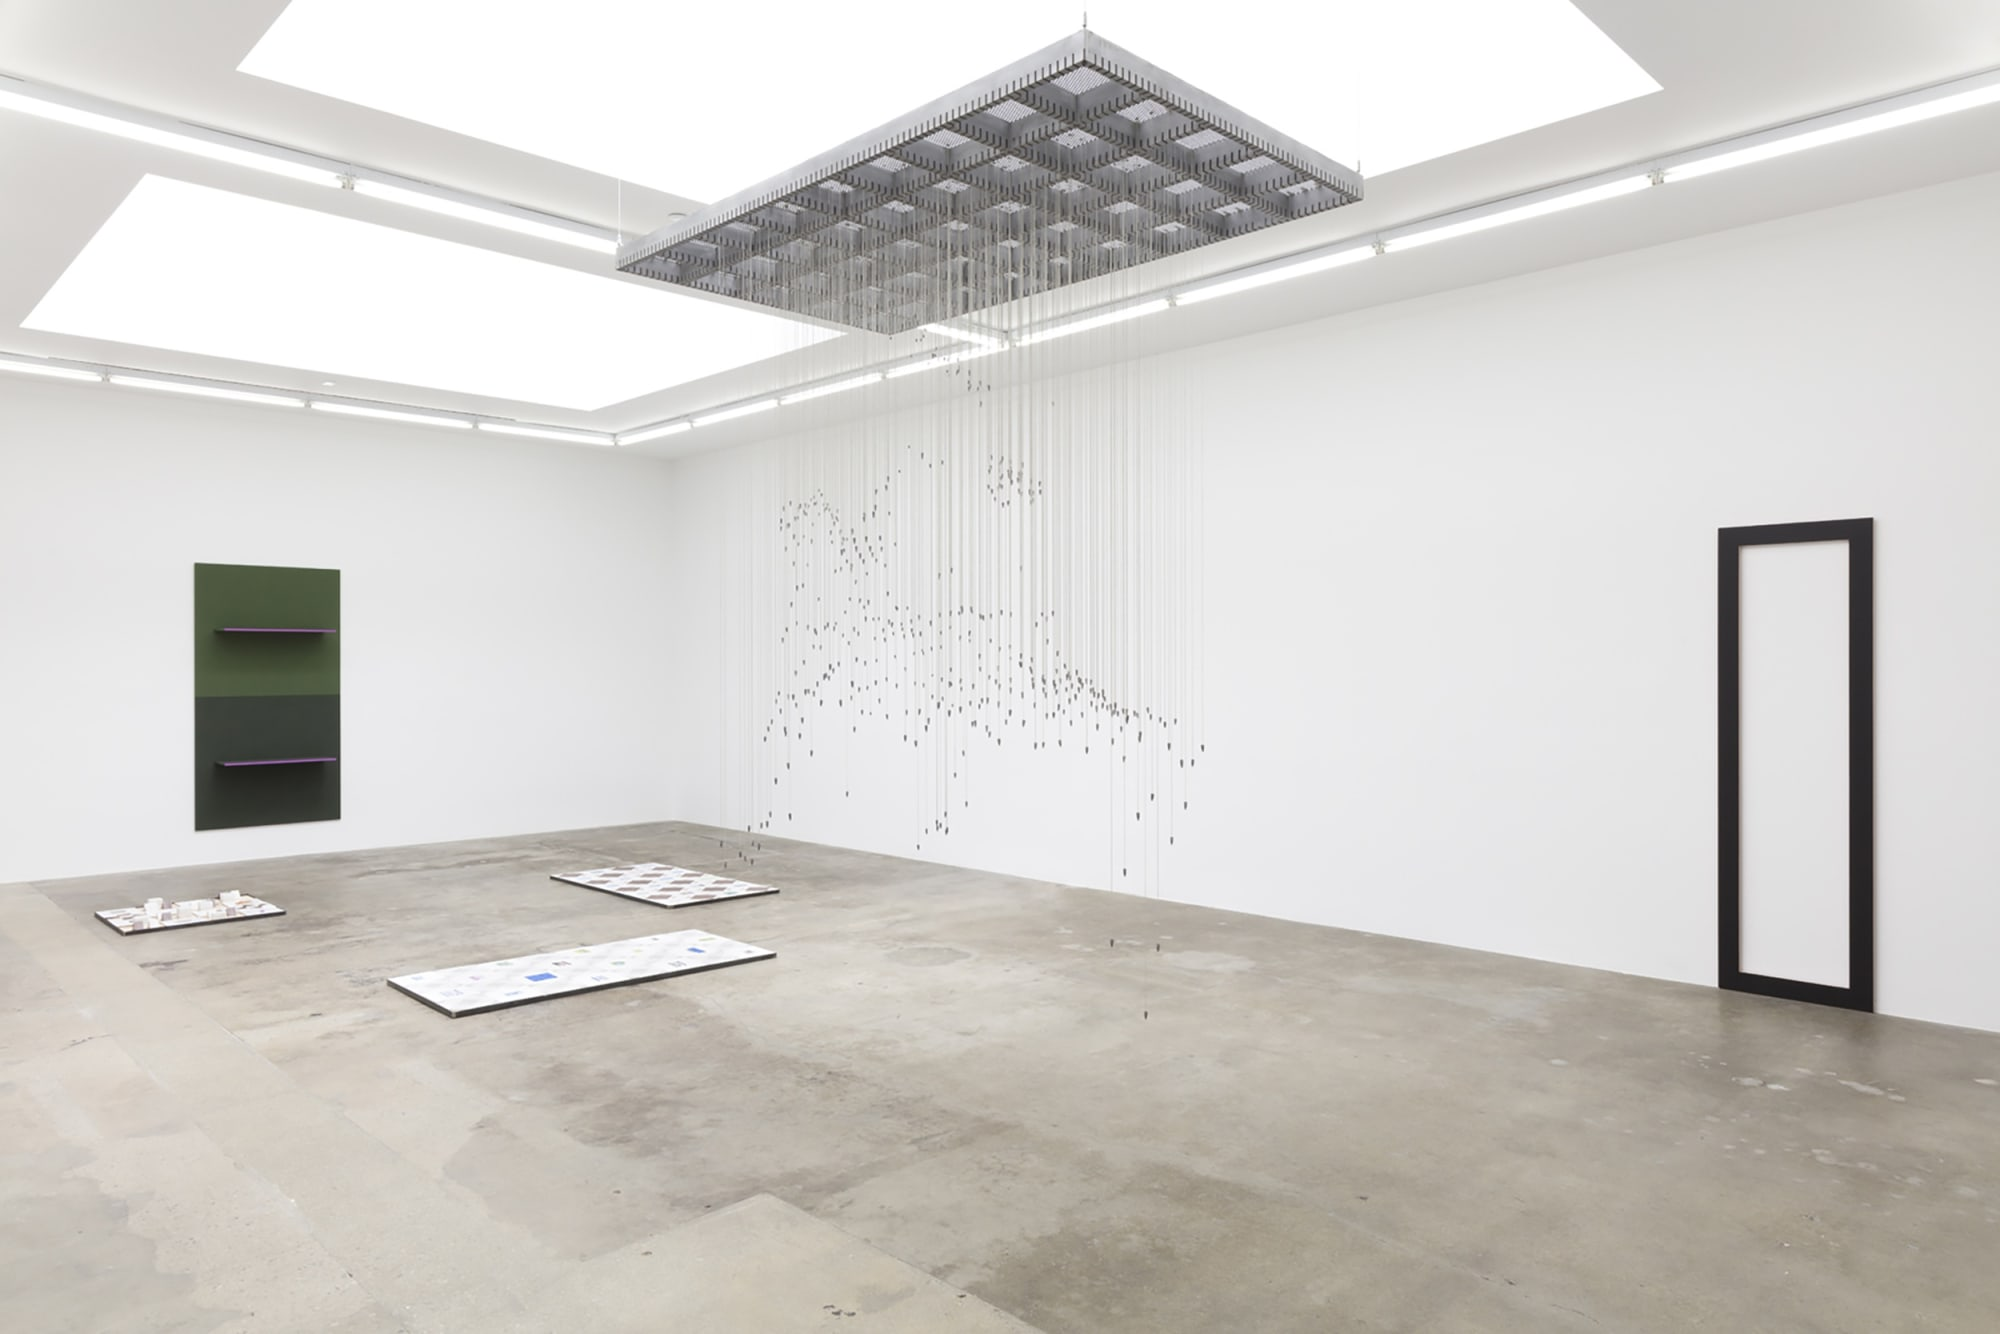 Installation image of spindly Sean Townley sculpture hanging from ceiling, Lisa Williams sculptures on walls behind it, and Michael Queenland sculptures installed on the polished concrete floor